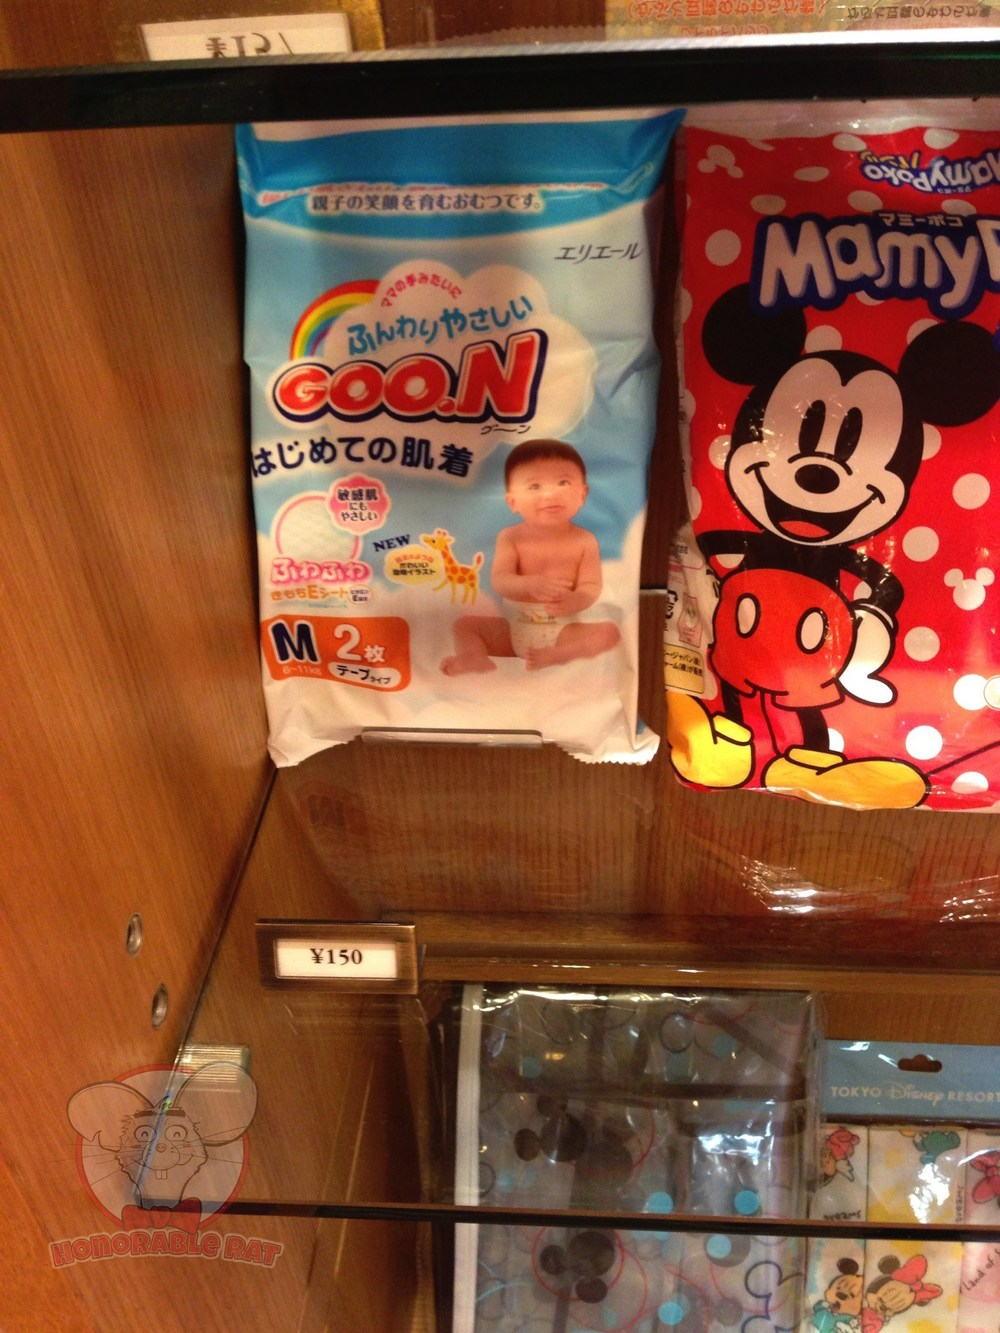 2 diapers for 150 yen. M sized diapers in any supermarket would cost about 1300 yen for a pack of 65.